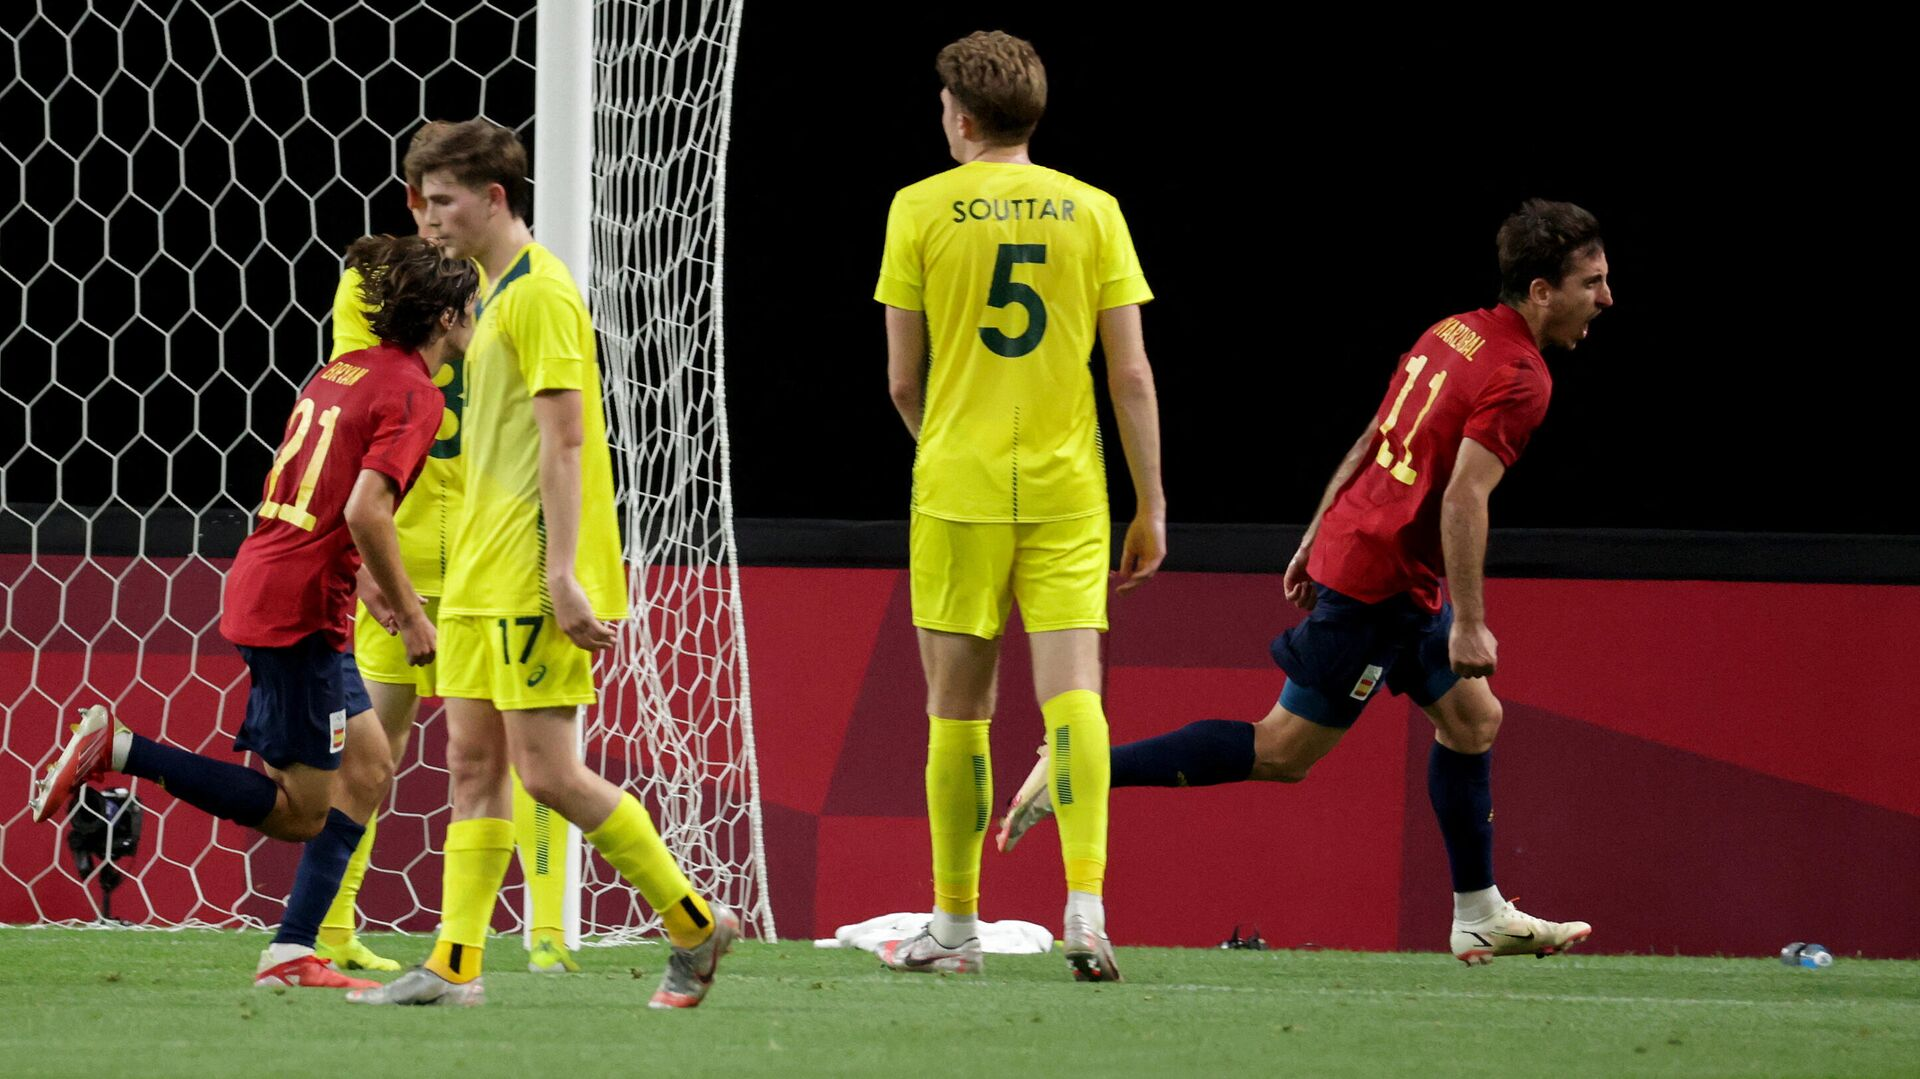 Spain's forward Mikel Oyarzabal (R) shouts in jubilation after scoring a goal during the Tokyo 2020 Olympic Games men's group C first round football match between Australia and Spain at Sapporo Dome in Sapporo on July 25, 2021. (Photo by ASANO IKKO / AFP) - РИА Новости, 1920, 25.07.2021